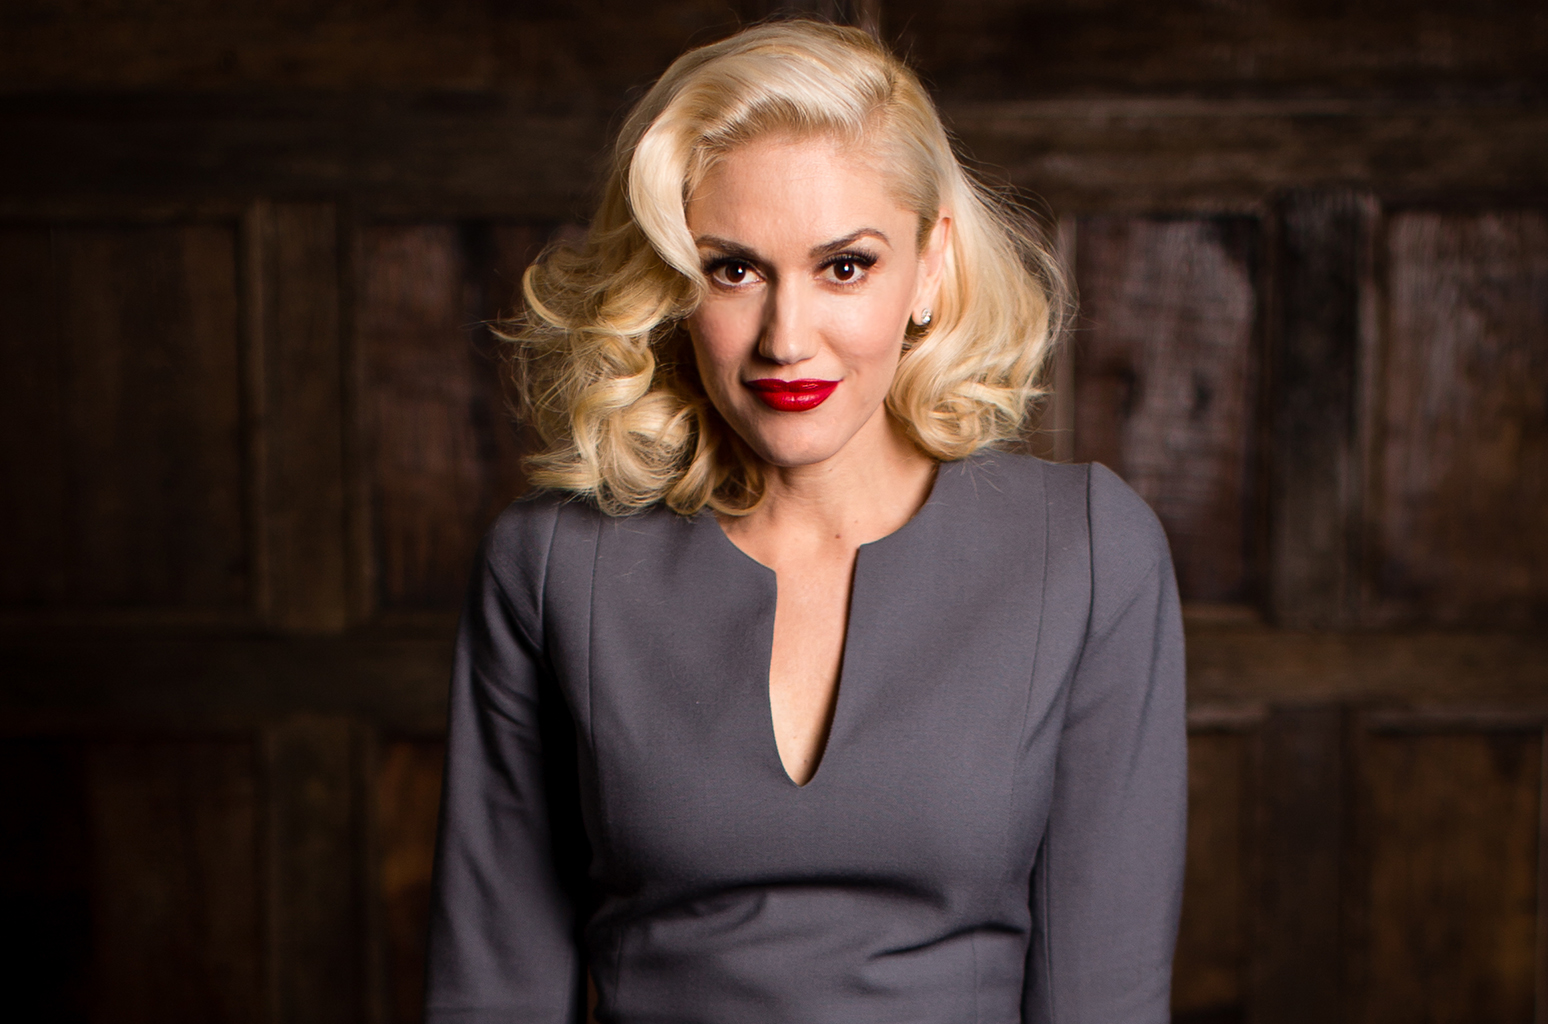 Gwen Stefani Is the New Face of Revlon | Billboard